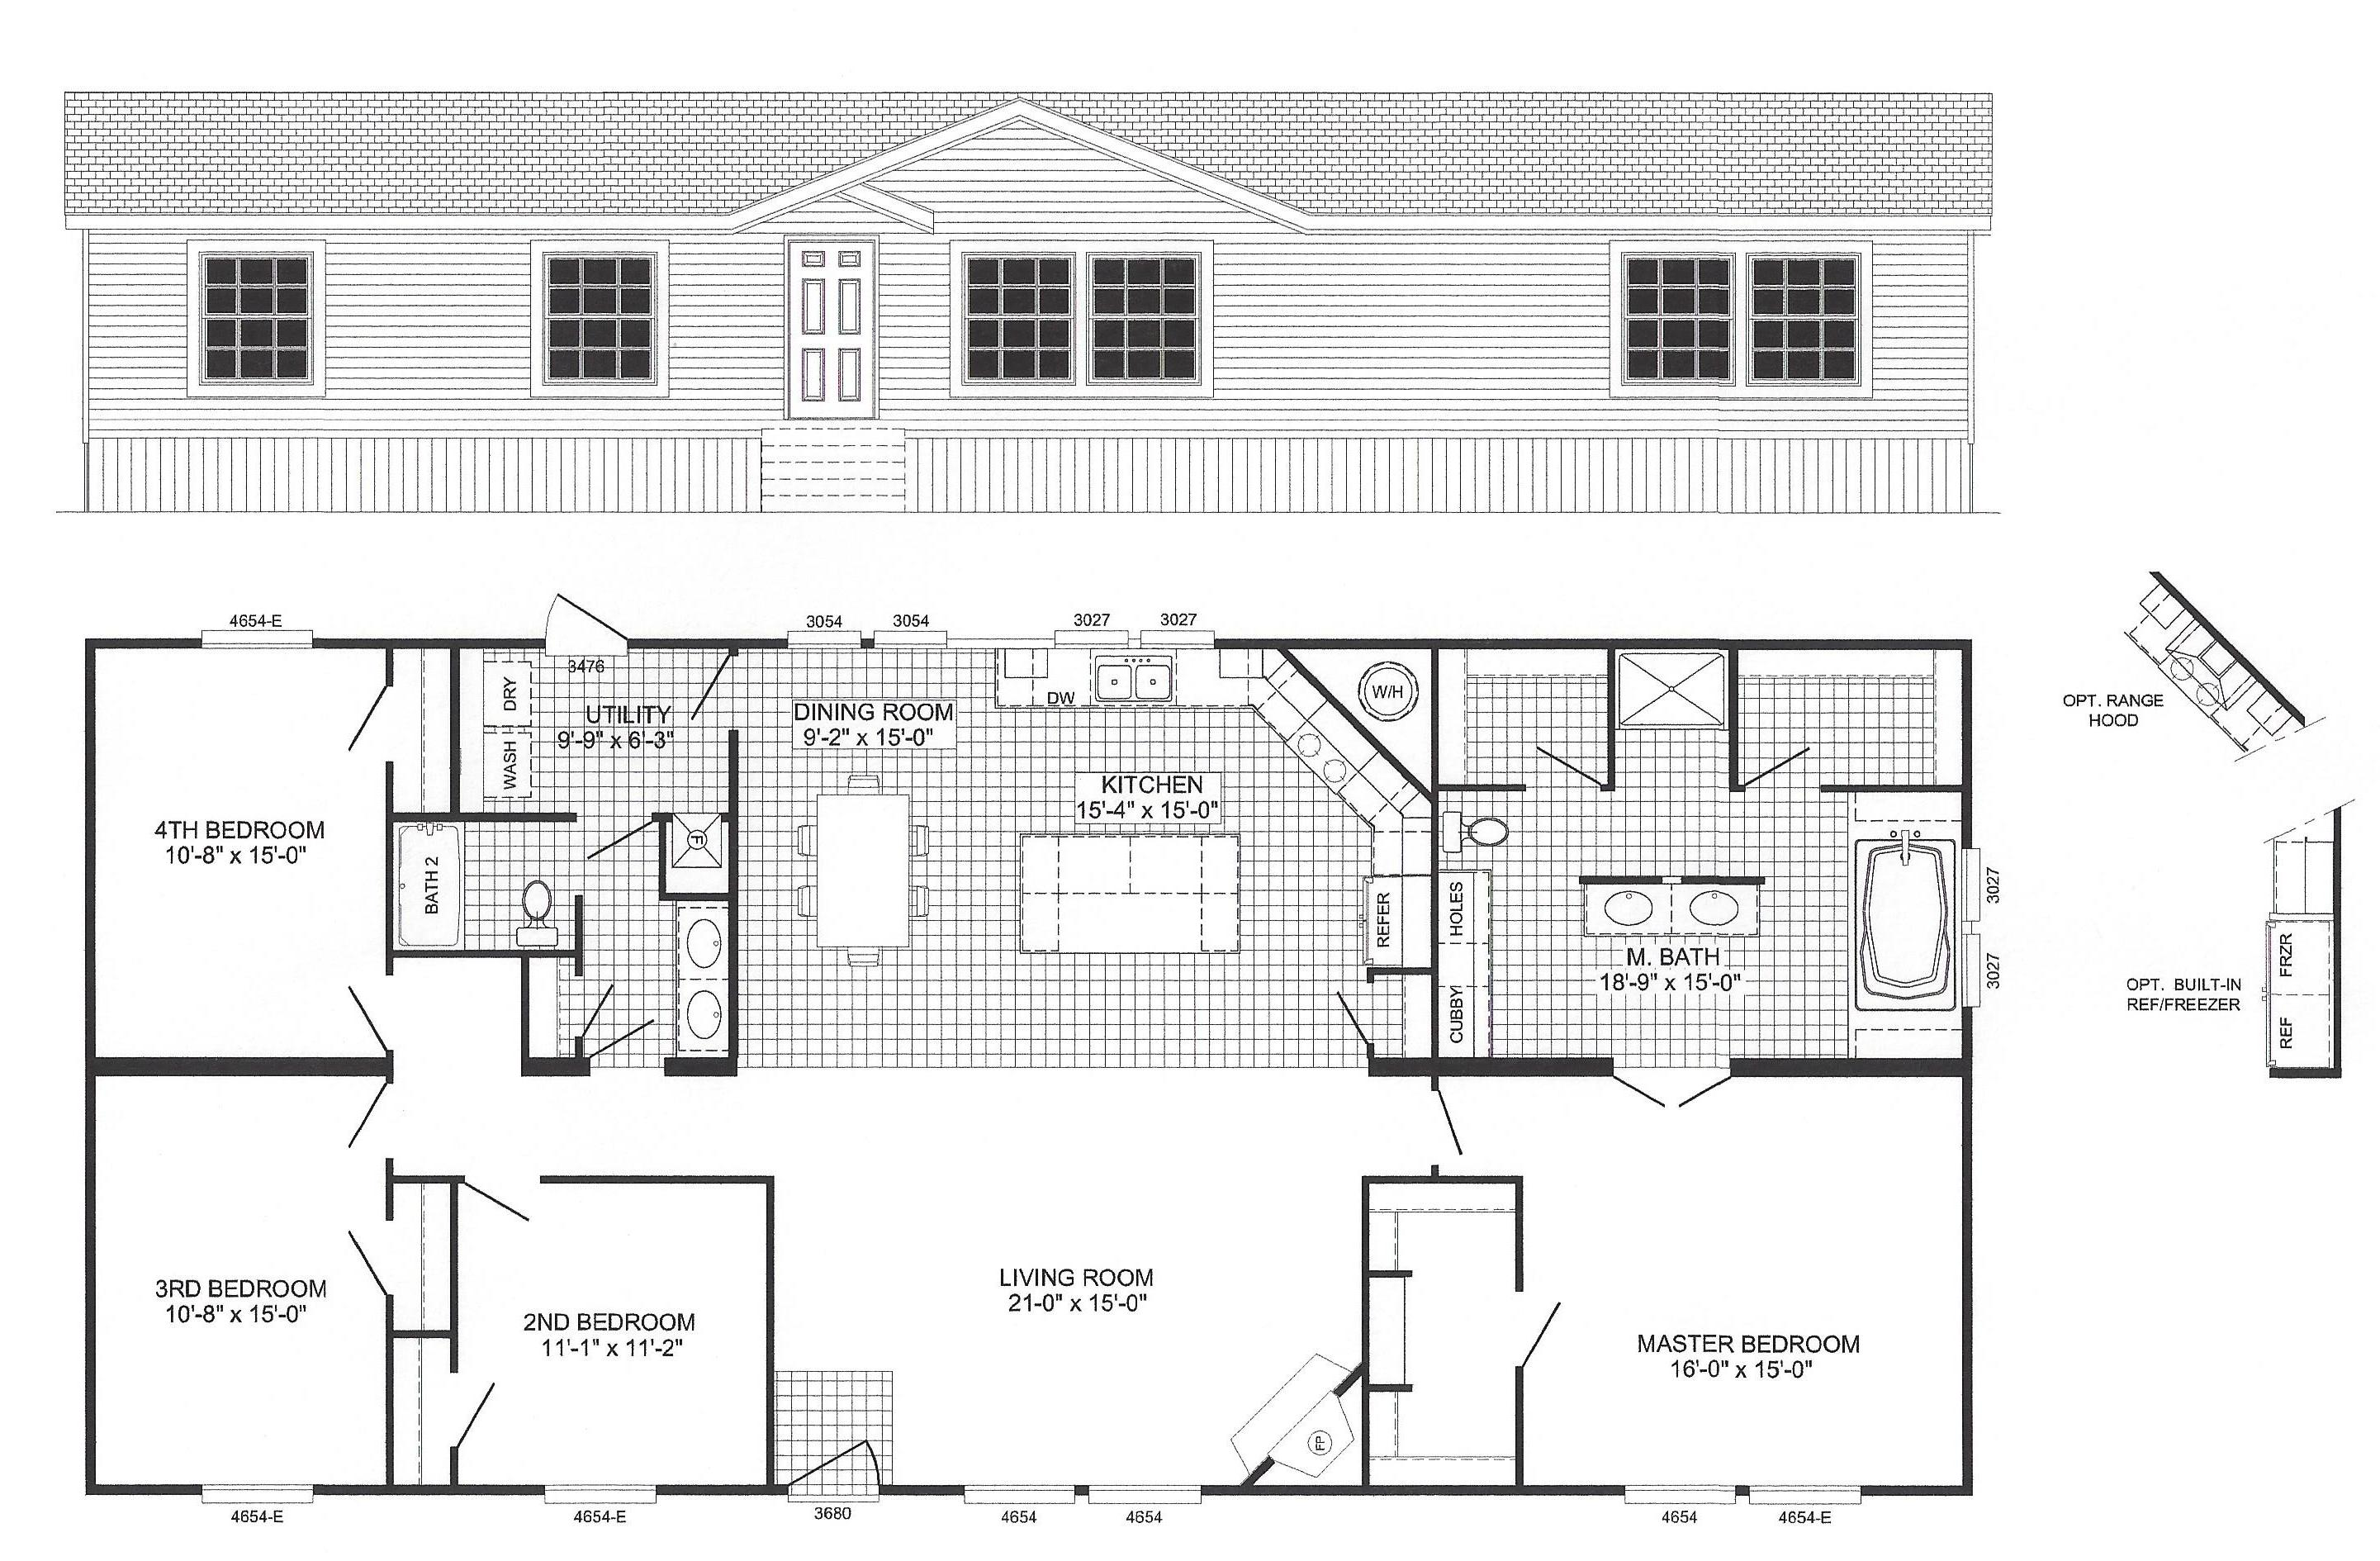 double wide mobile homes with 4 Bedroom Floor Plan B 6012 on Floor Plan 6 further How Manufactured Homes Are Constructed besides B144e74af95eebd2 Hunting C  Hunting Cabins in addition Fleetwood Homes 28x76 Double Wide in addition 4 Bedroom Floor Plan B 6012.